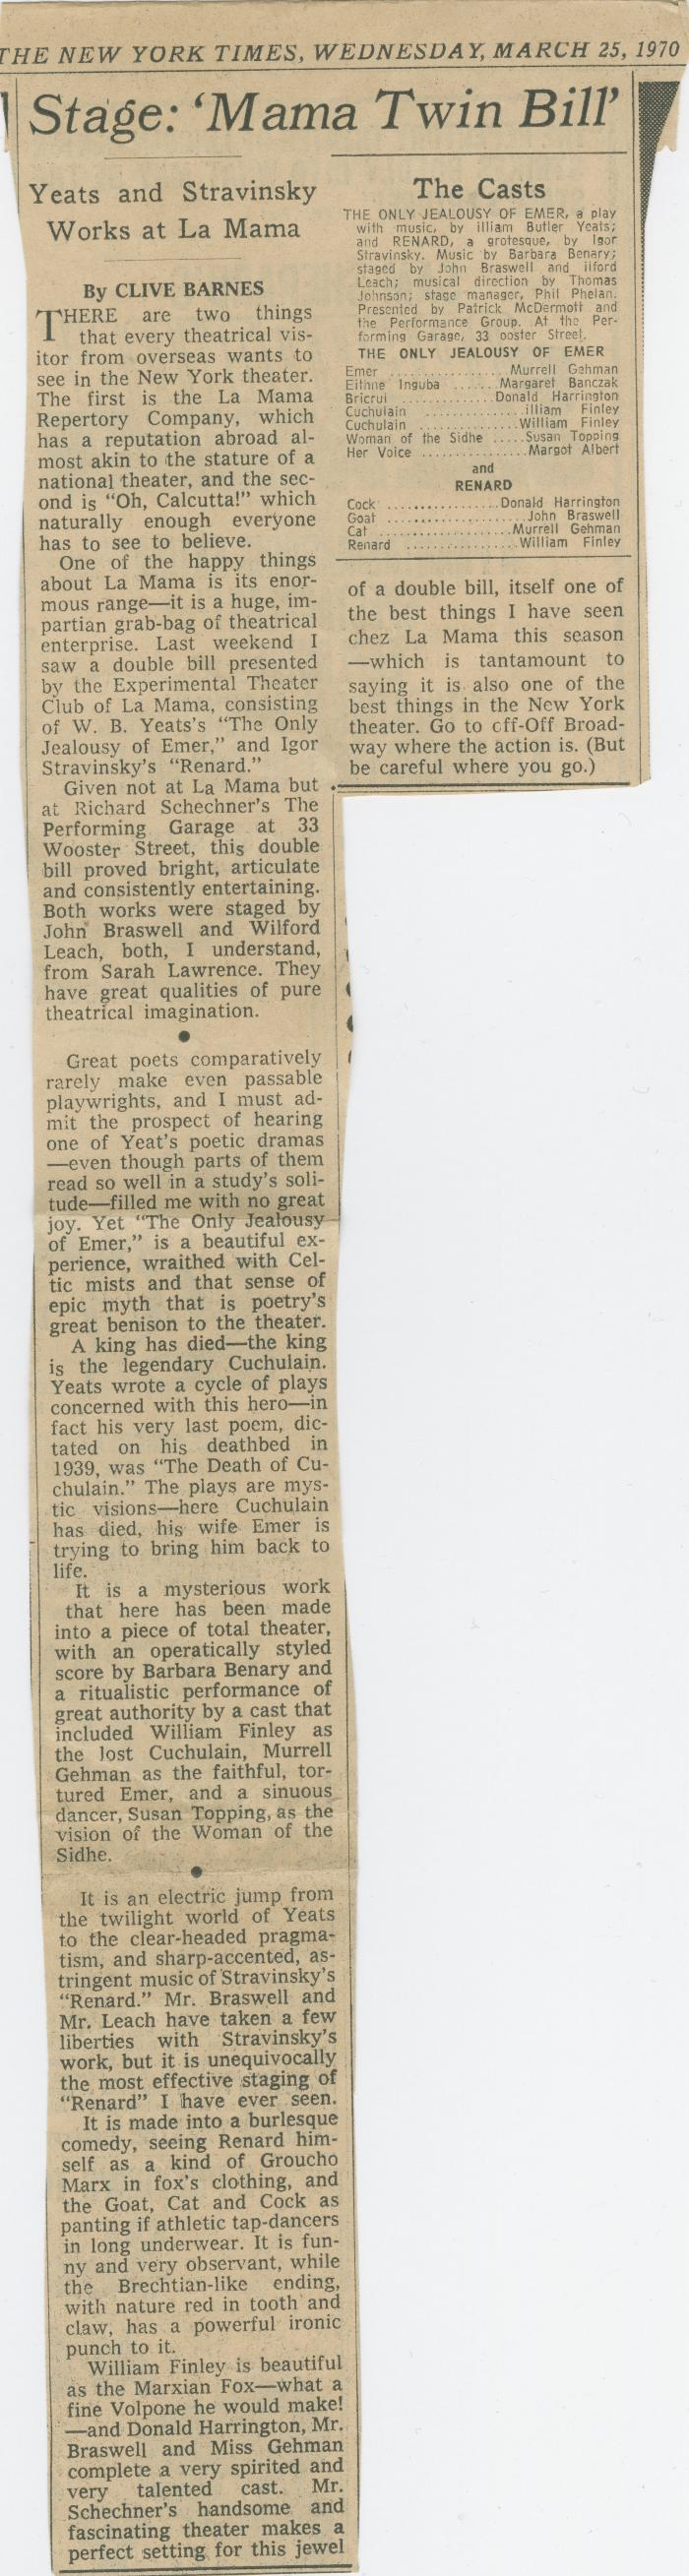 """Review: """"Renard"""" and """"The Only Jealousy of Emer"""" (1970b)"""